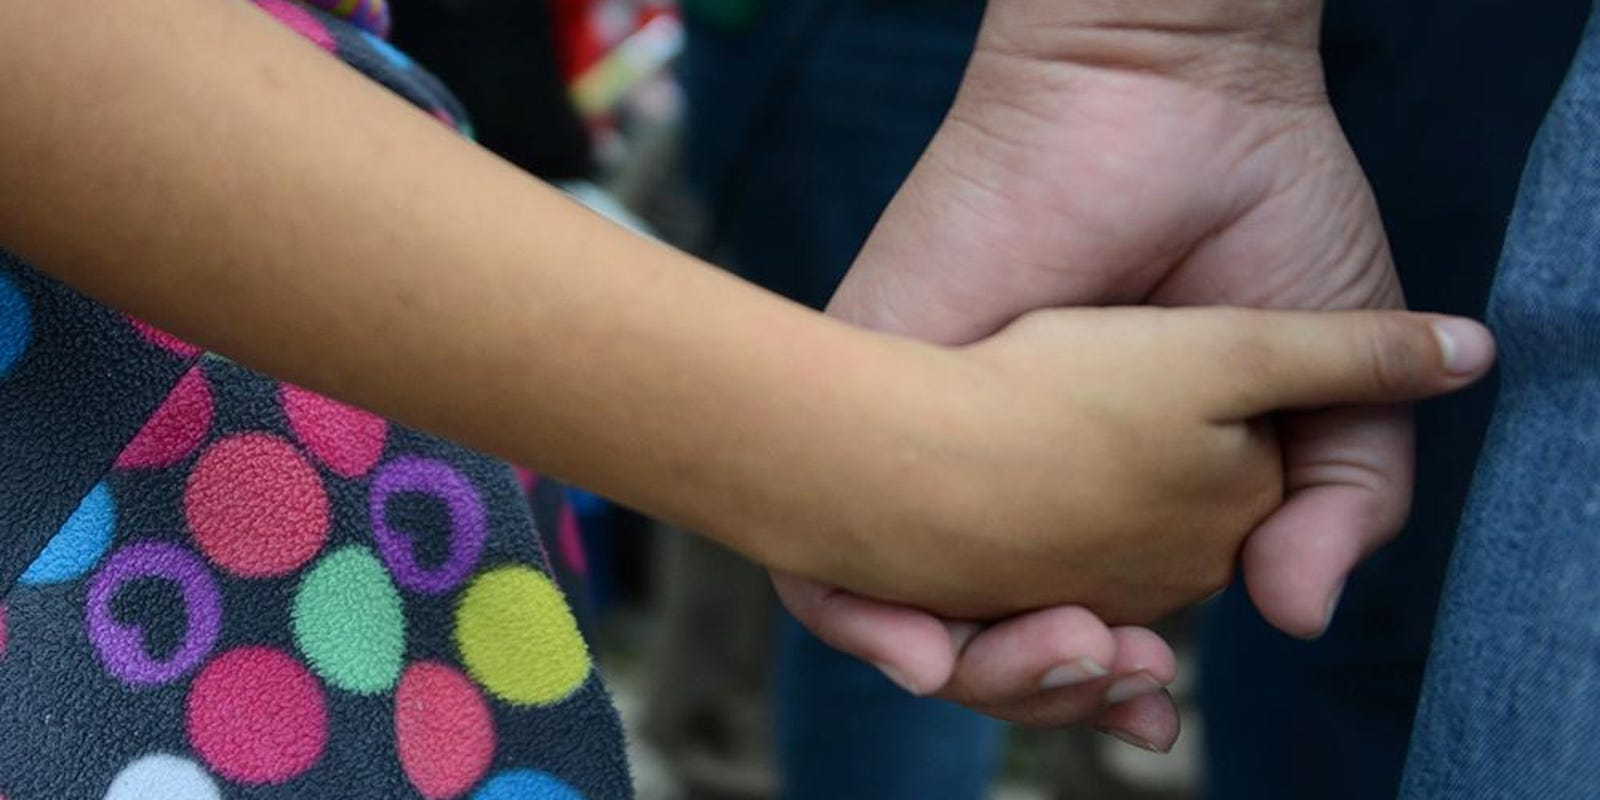 Opinion: Don't let pandemic keep you from caring for foster children